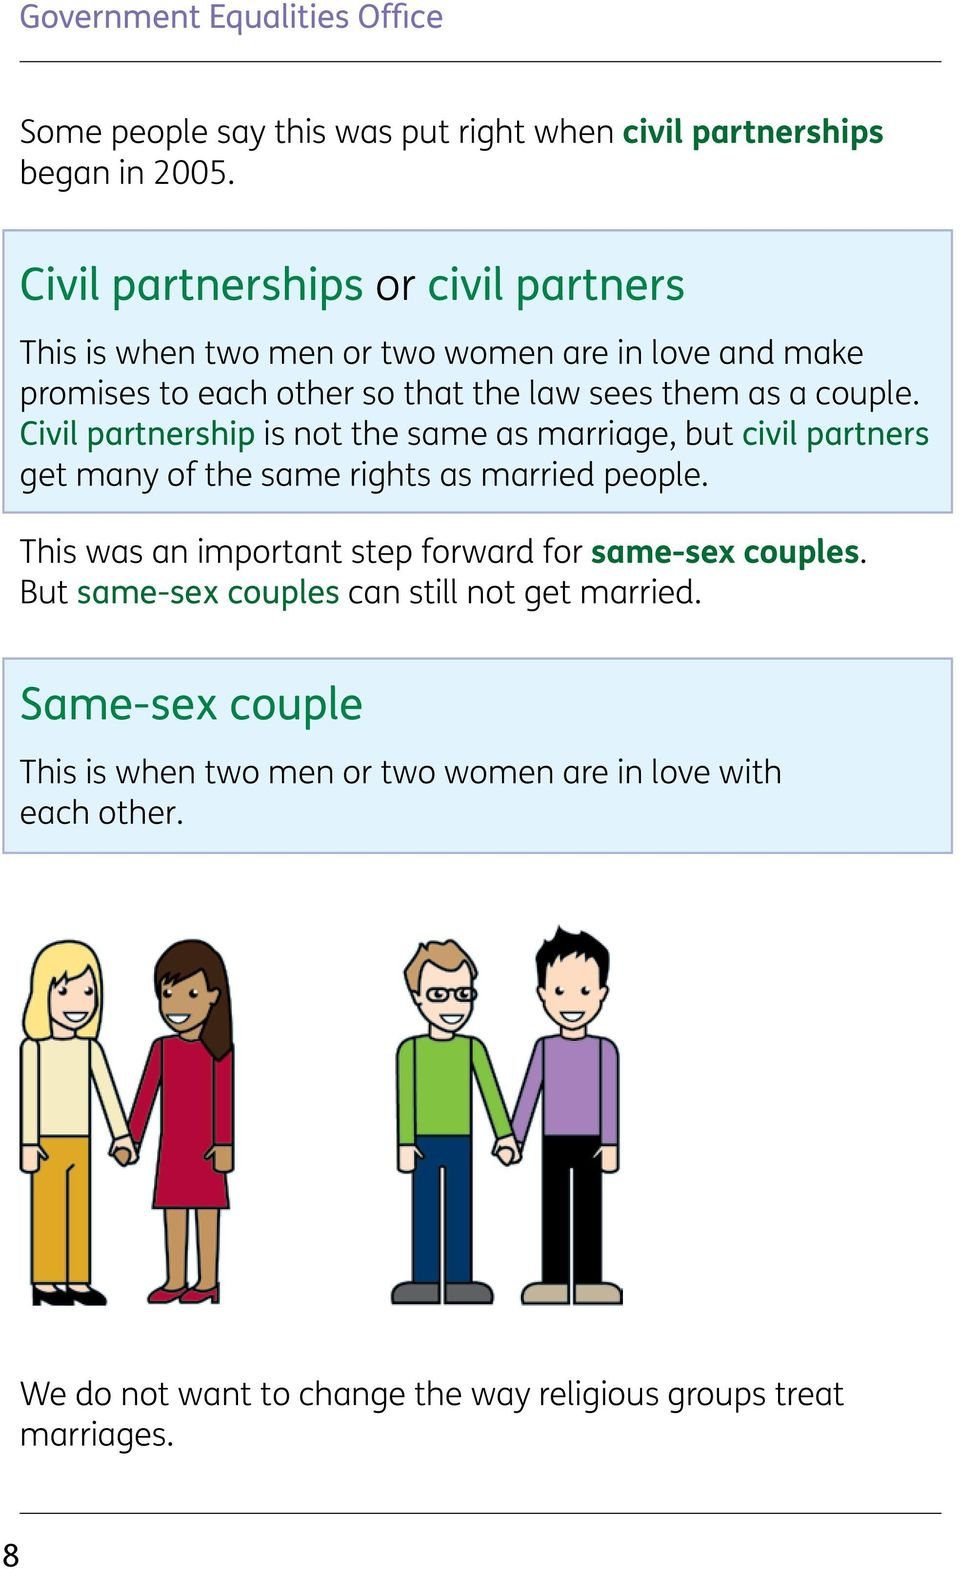 Civil partnership is not the same as marriage, but civil partners get many of the same rights as married people.